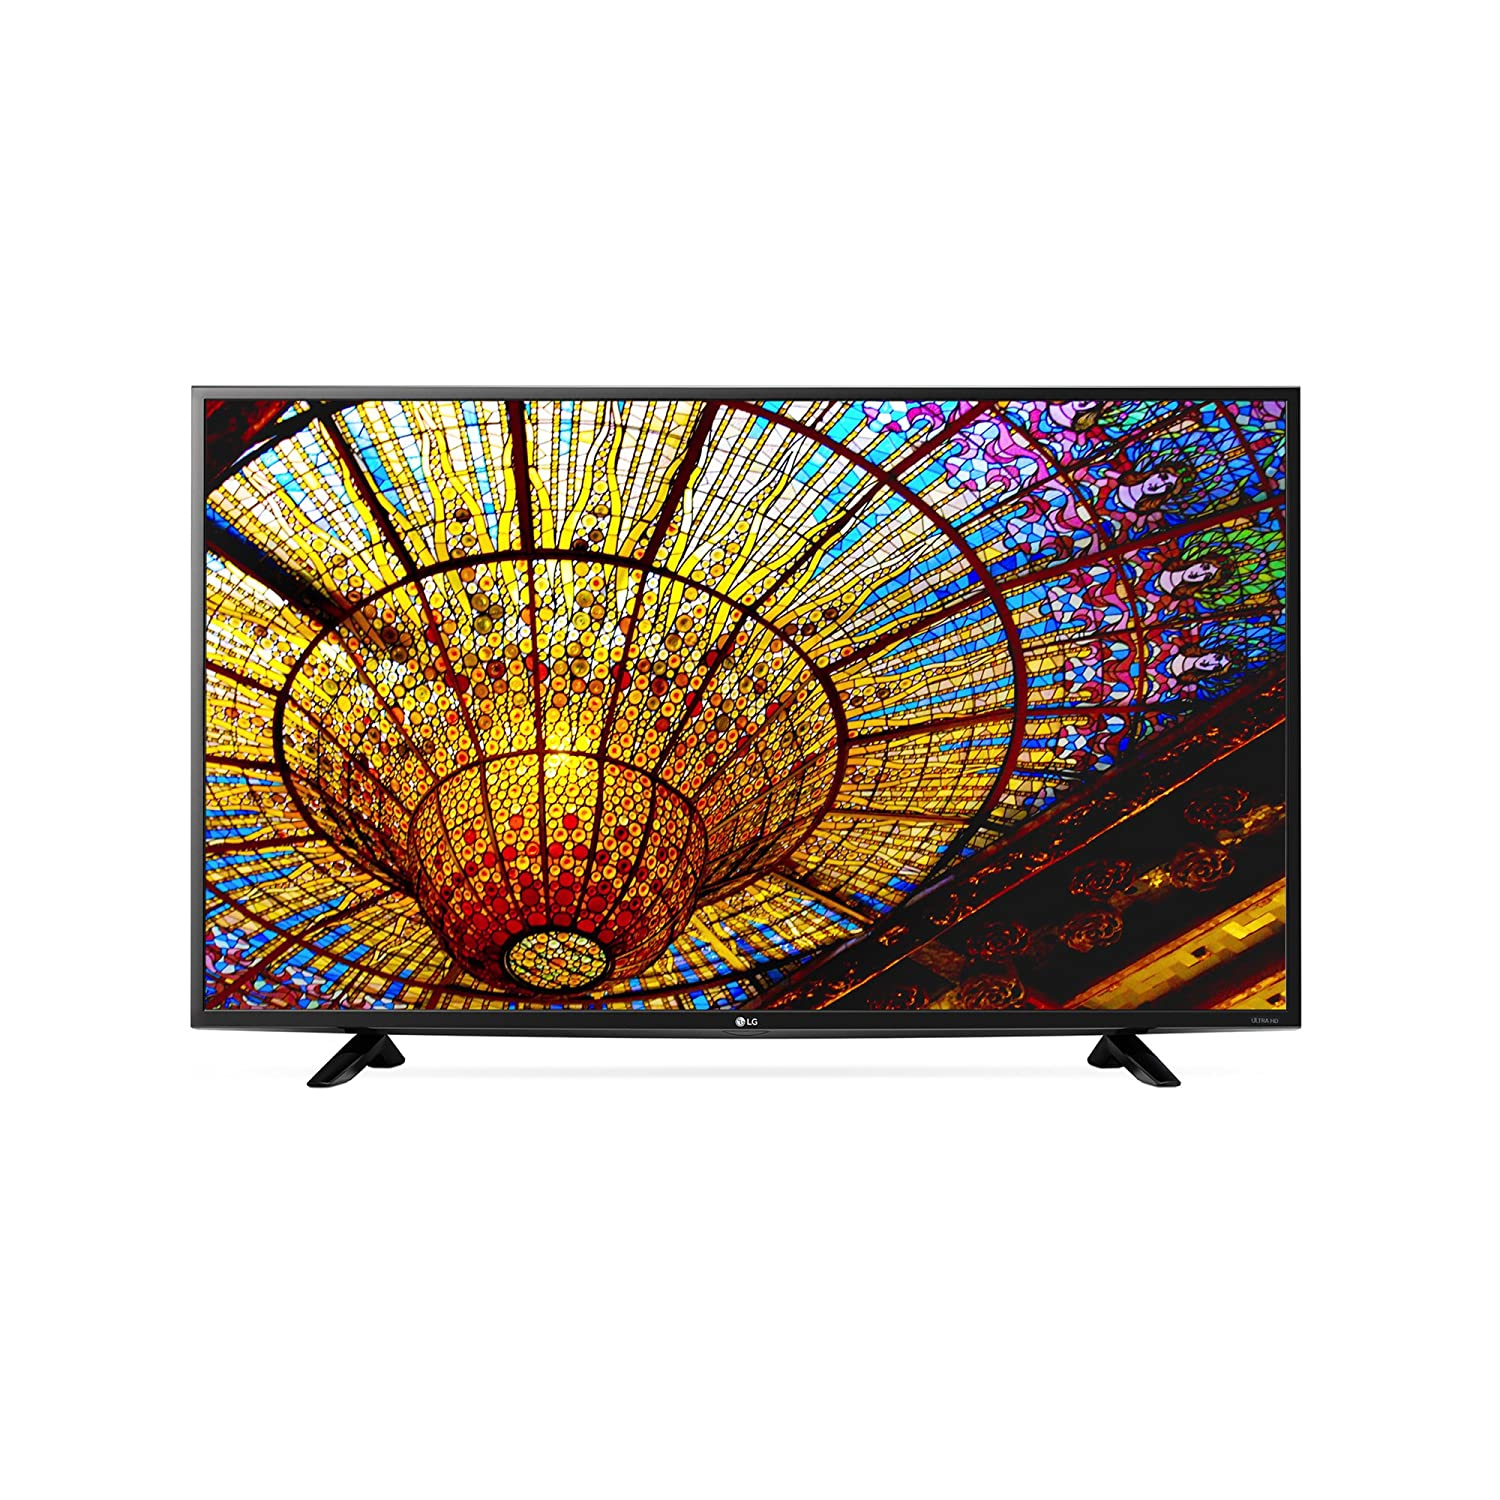 LG Electronics 49UF6400 49-Inch 4K Ultra HD Smart LED TV